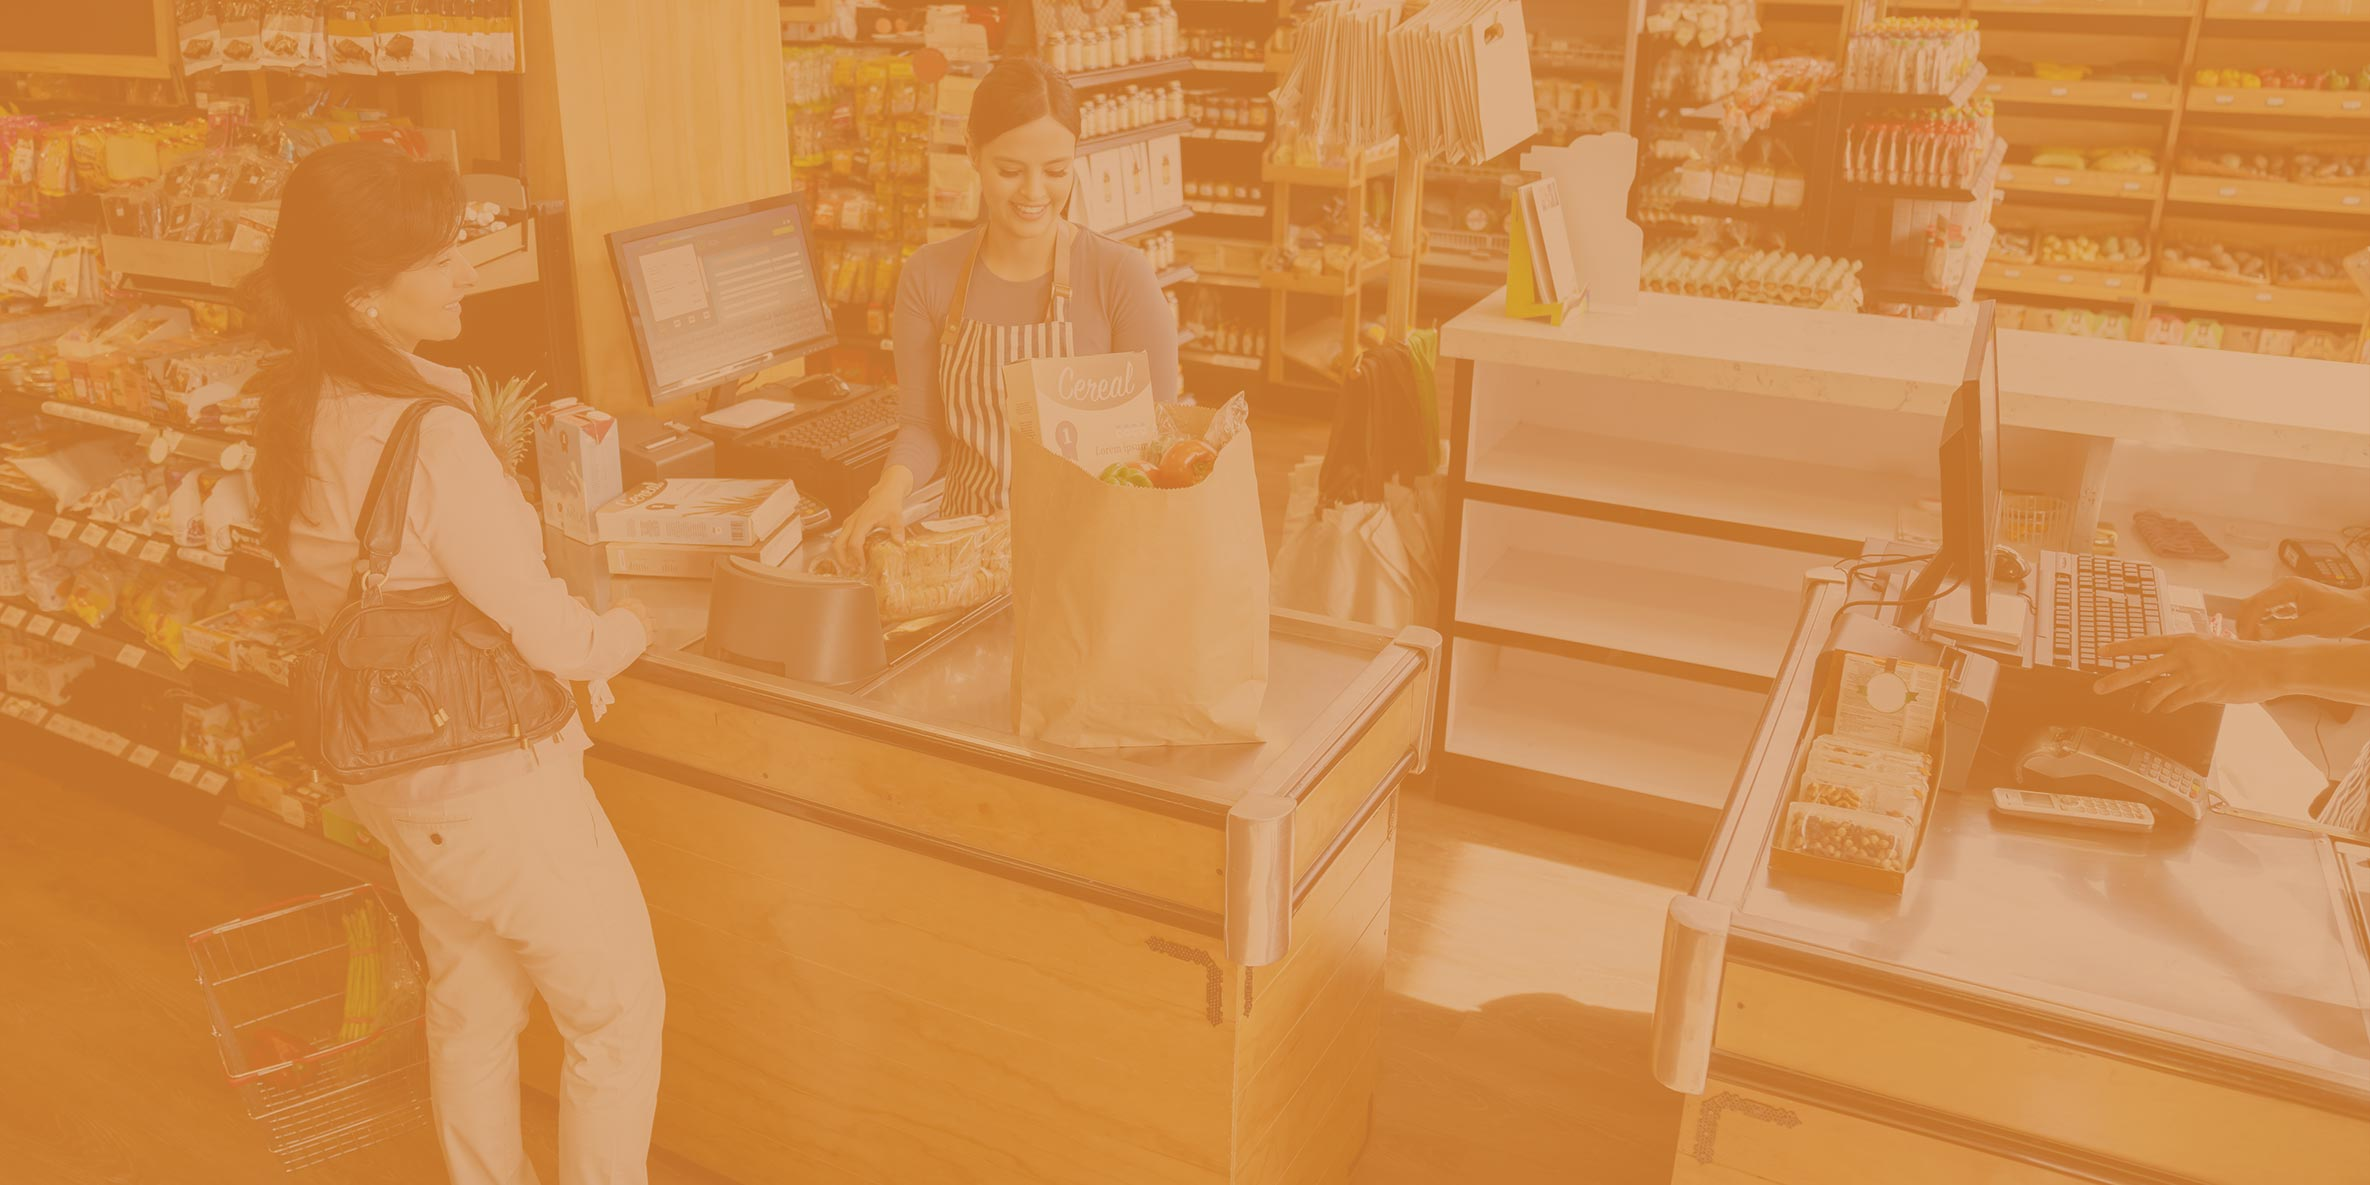 How to Monitor Activity at the Register With Video and Data Analytics